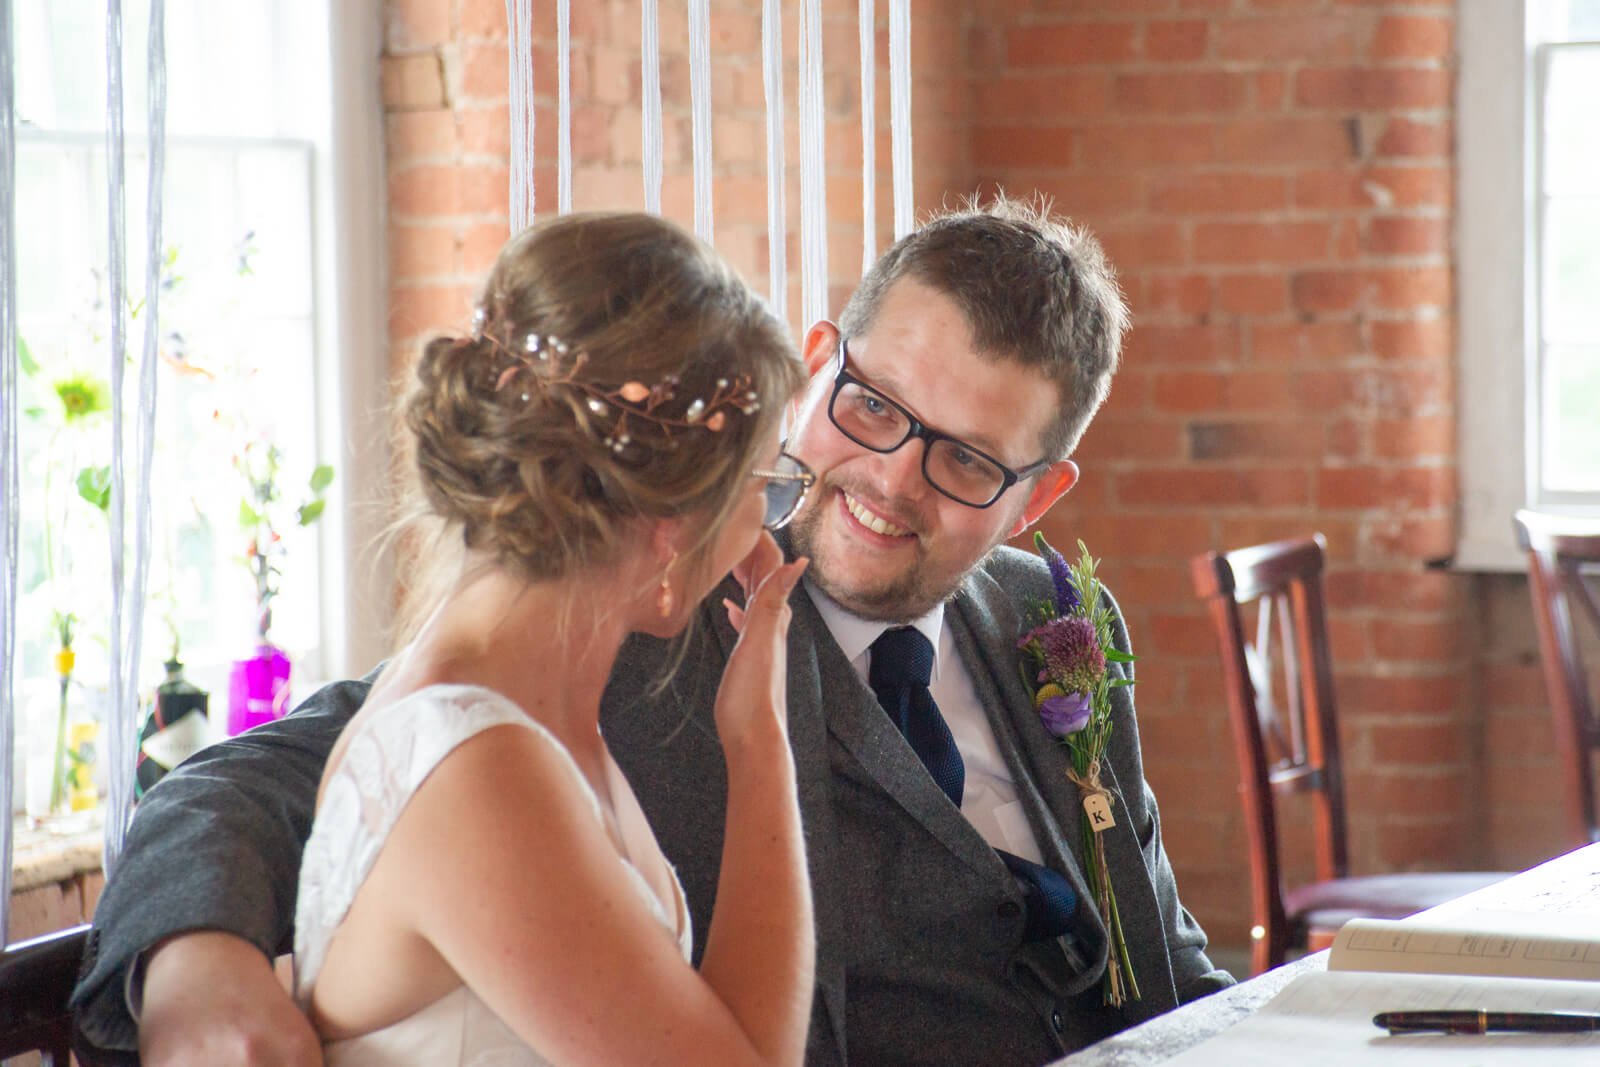 Groom looks at bride as she talks to him while signing the register